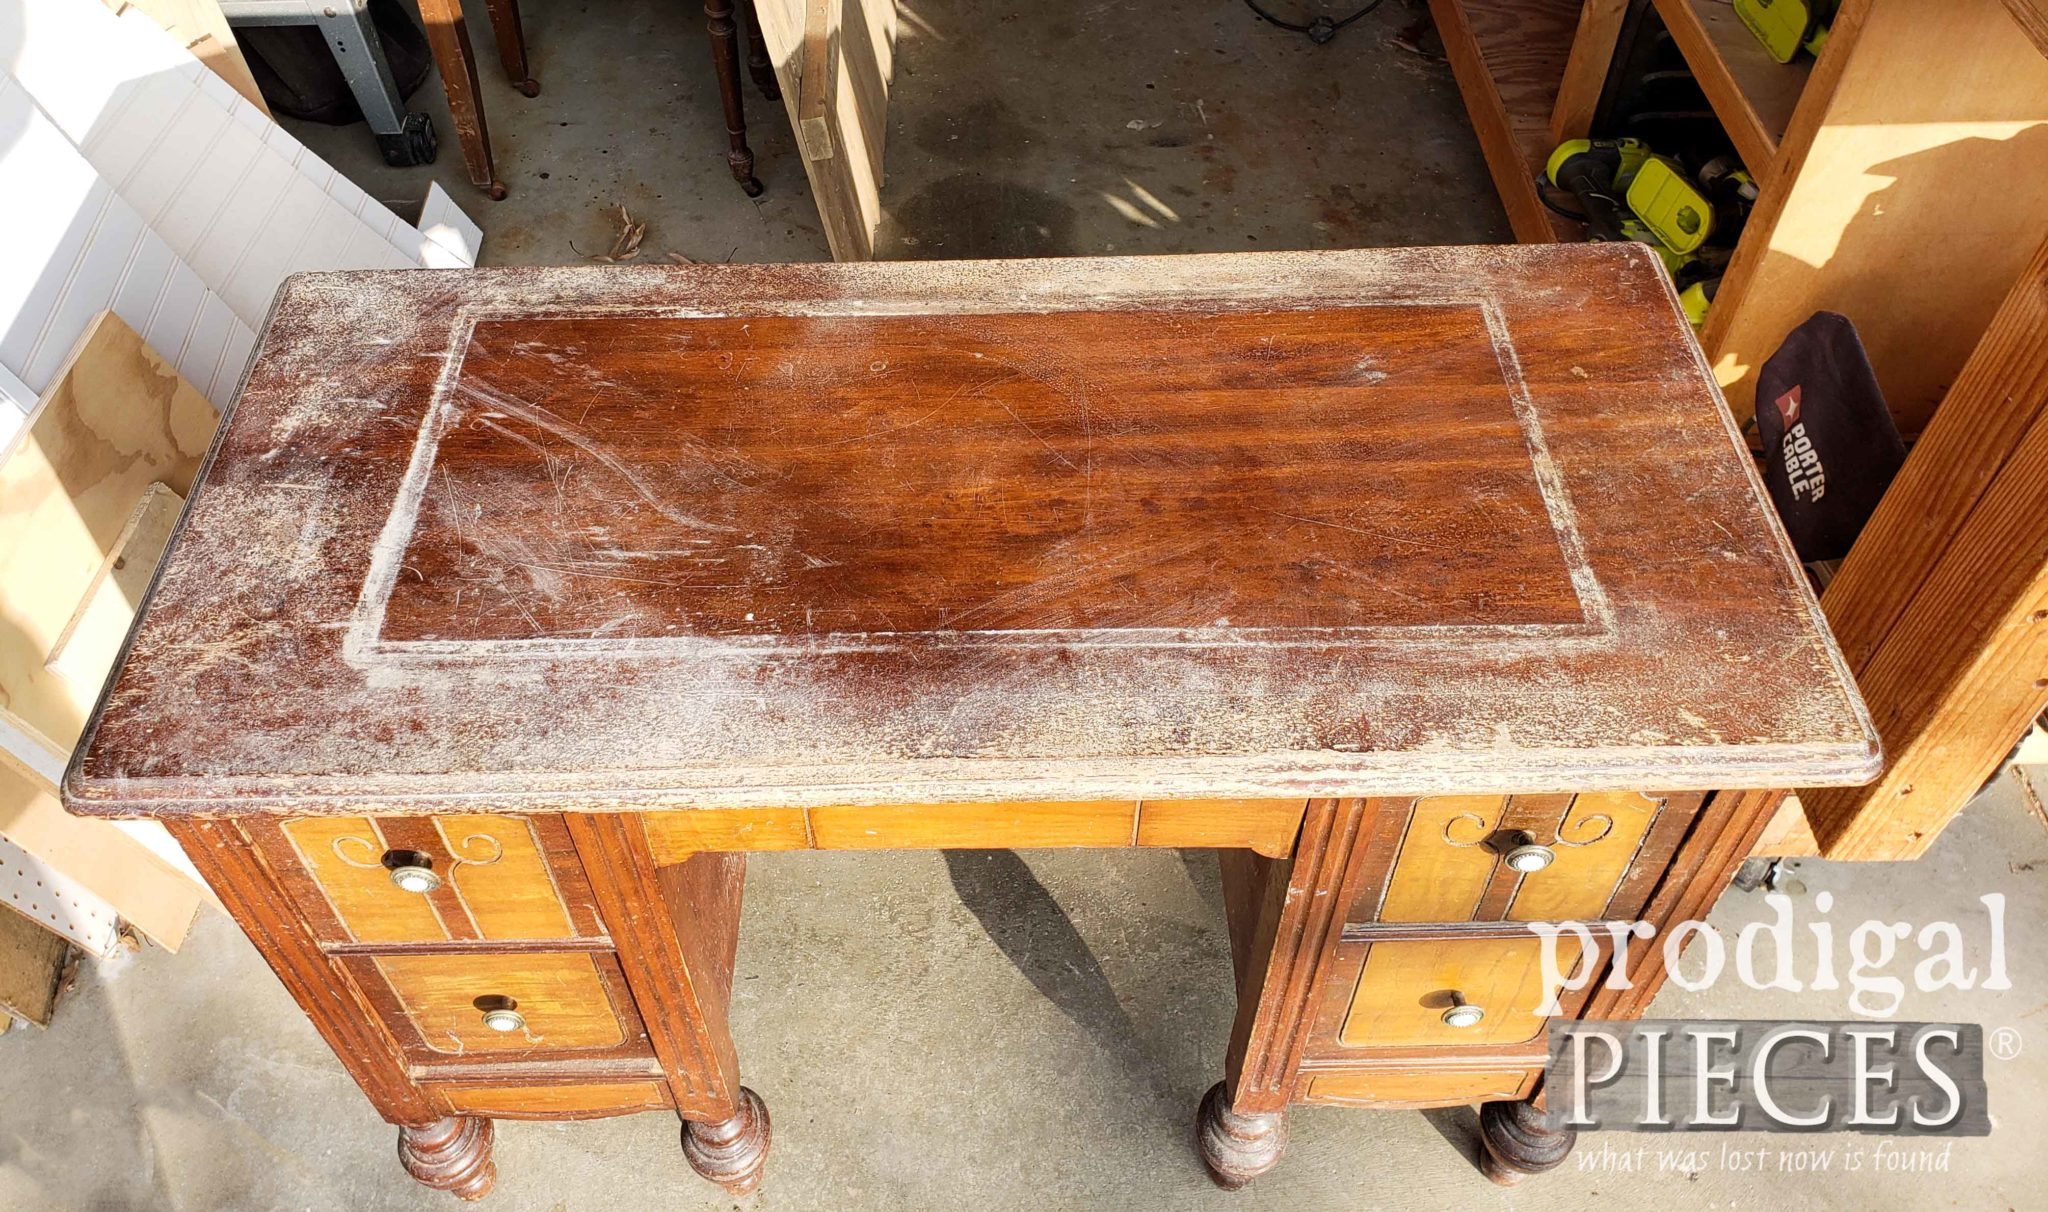 Antique Dressing Table Top Before | prodigalpieces.com